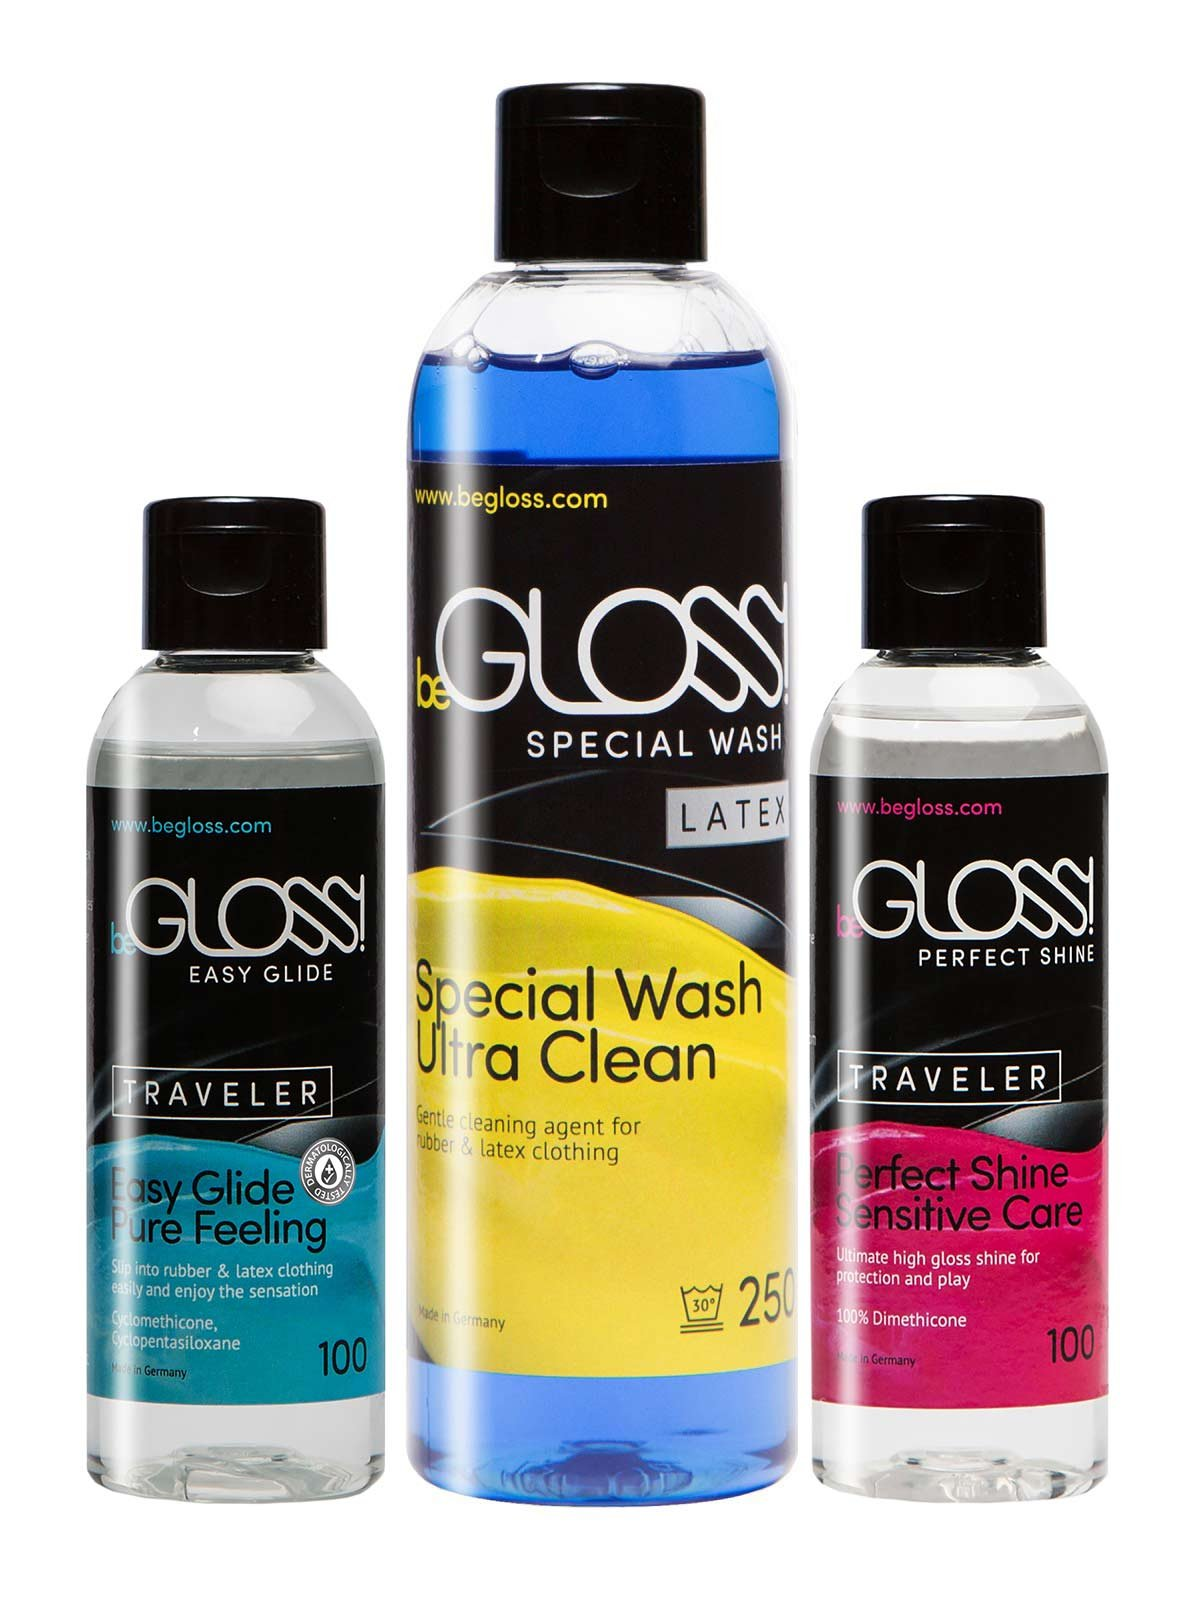 beGloss Perfect Shine 100 - Easy Glide 100 - Special Wash 250 Combo - for Latex Clothing